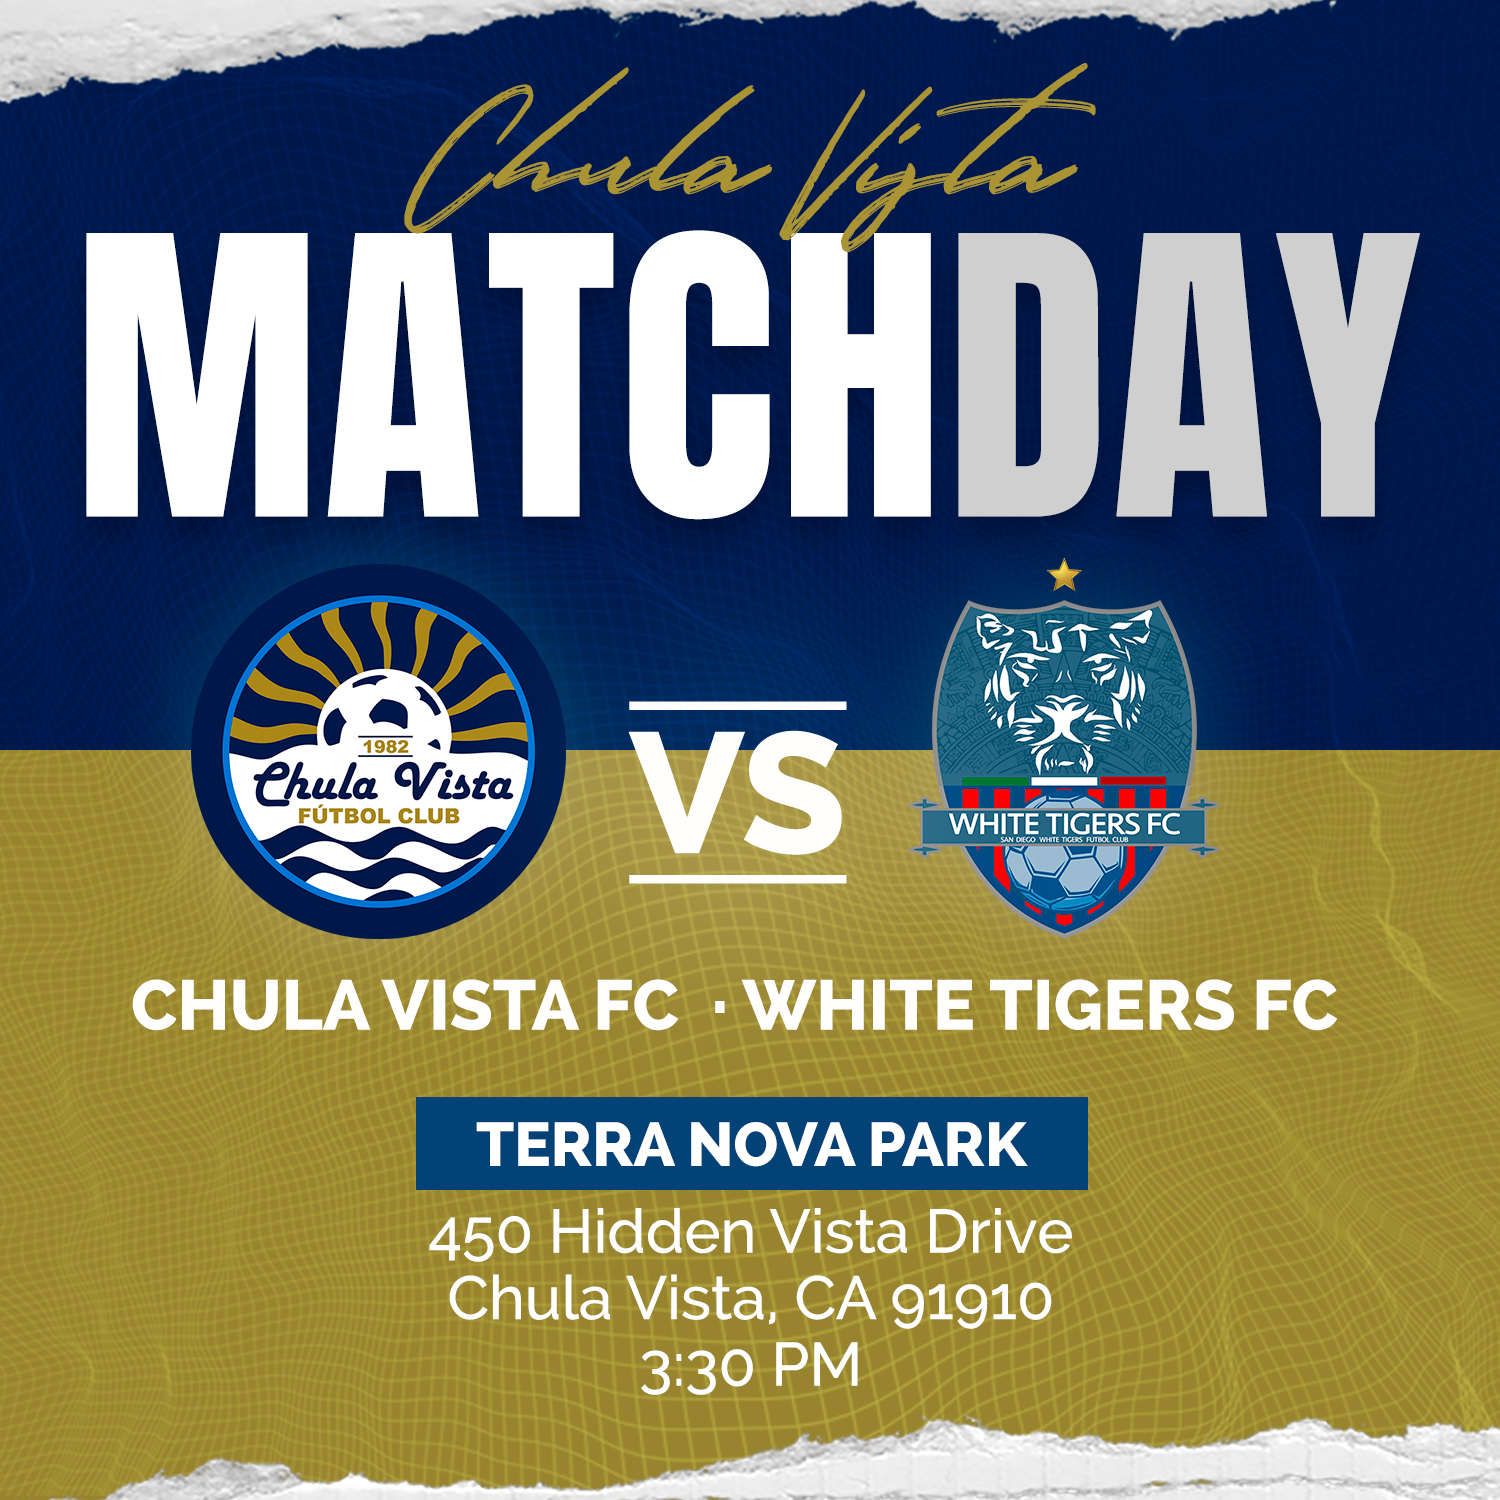 Chula Vista FC to commence their 2022 Lamar Hunt U.S. Open Cup qualifying campaign